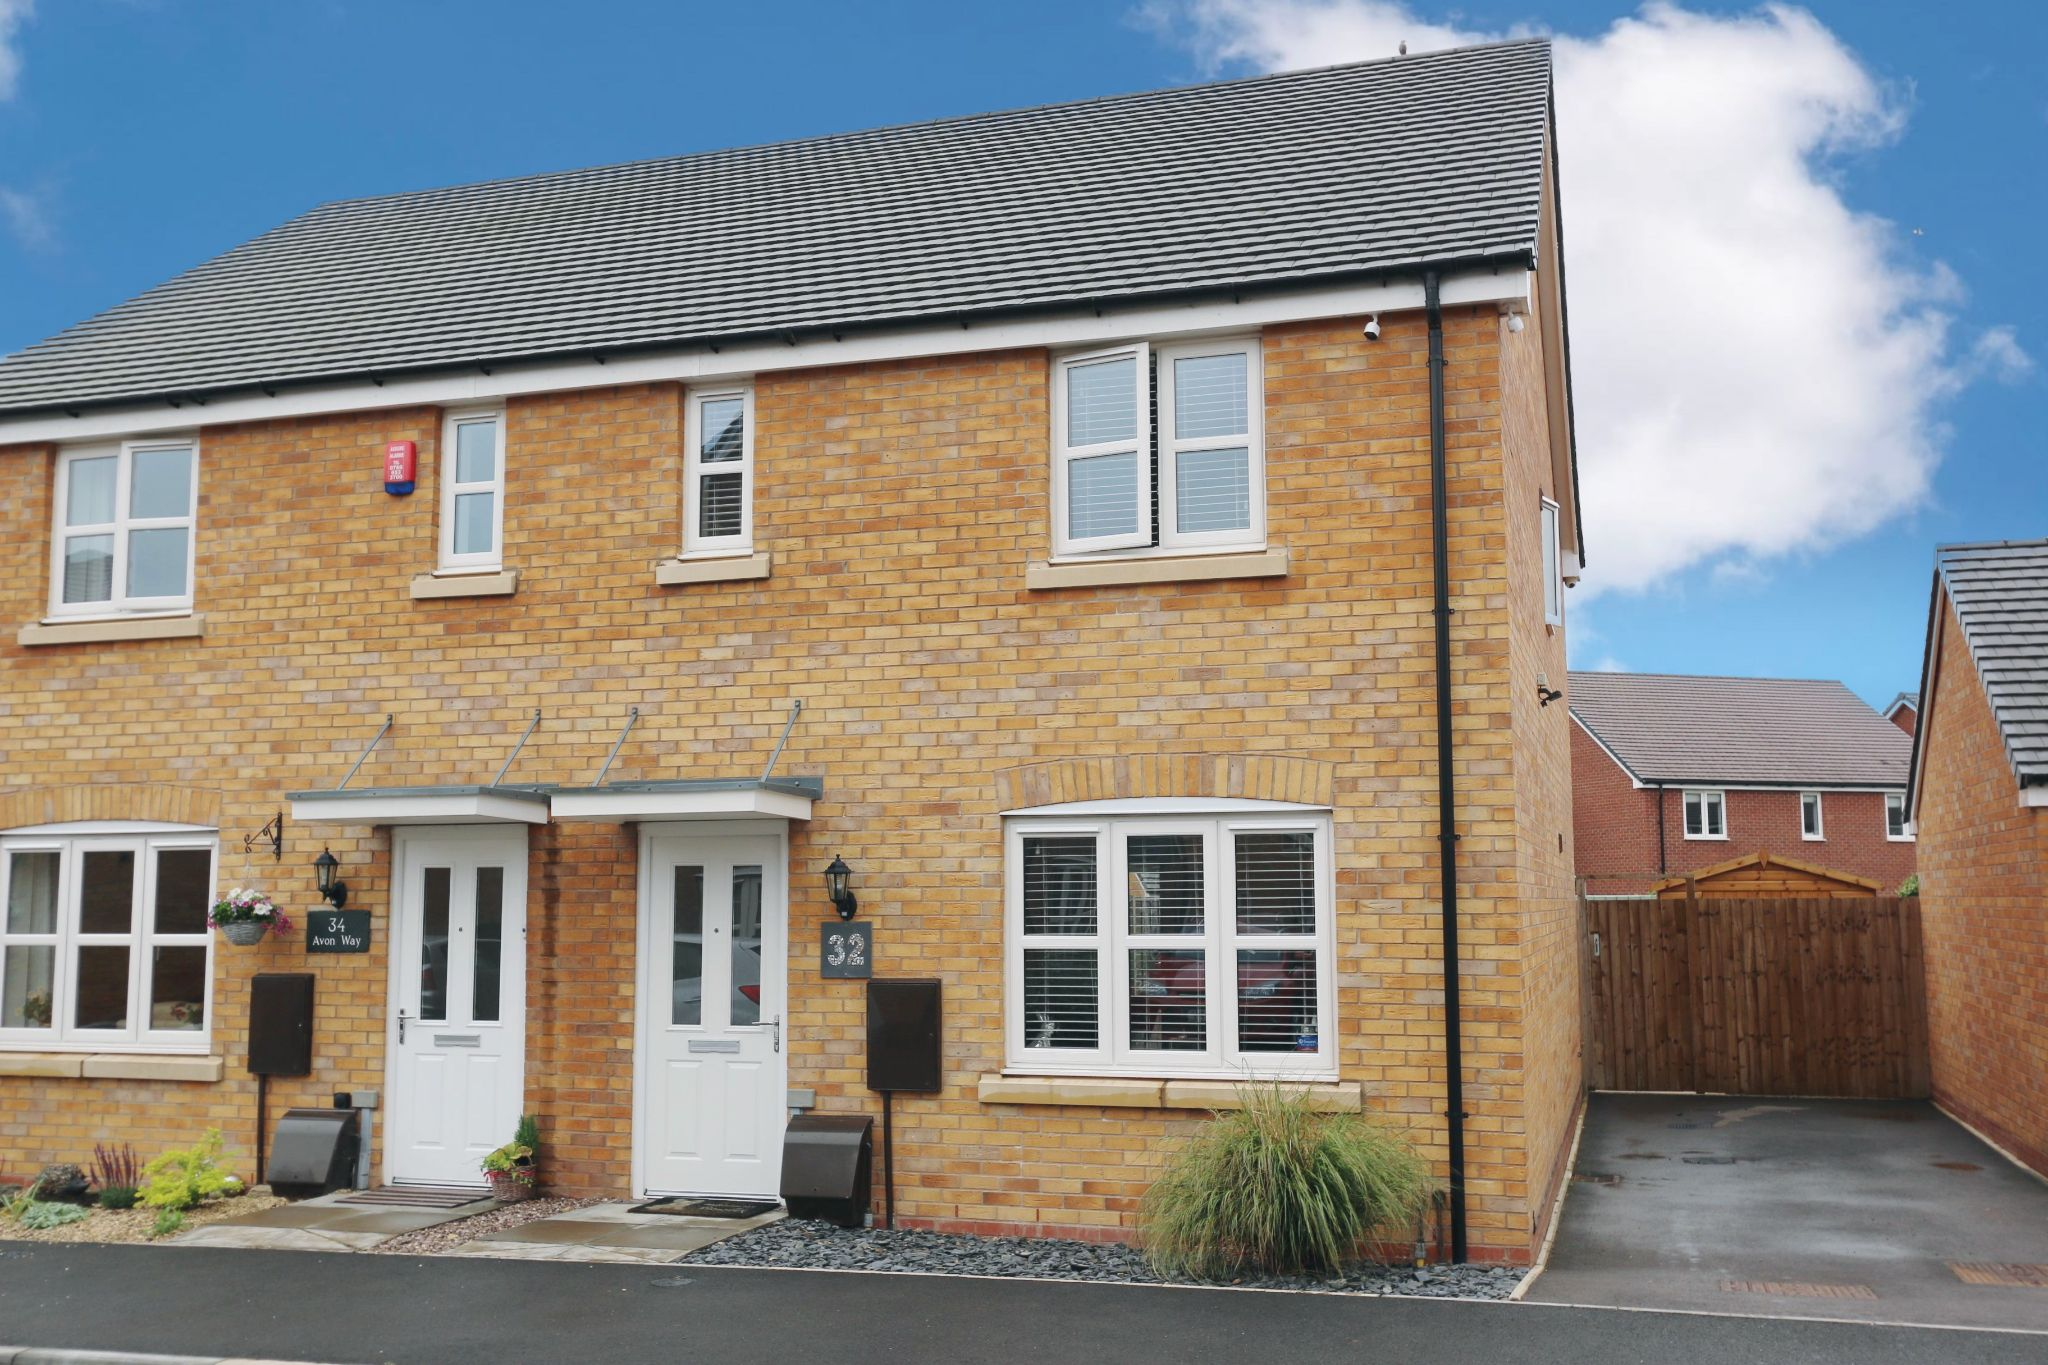 3 bedroom semi-detached house For Sale in Bidford On Avon, Alcester - Property photograph